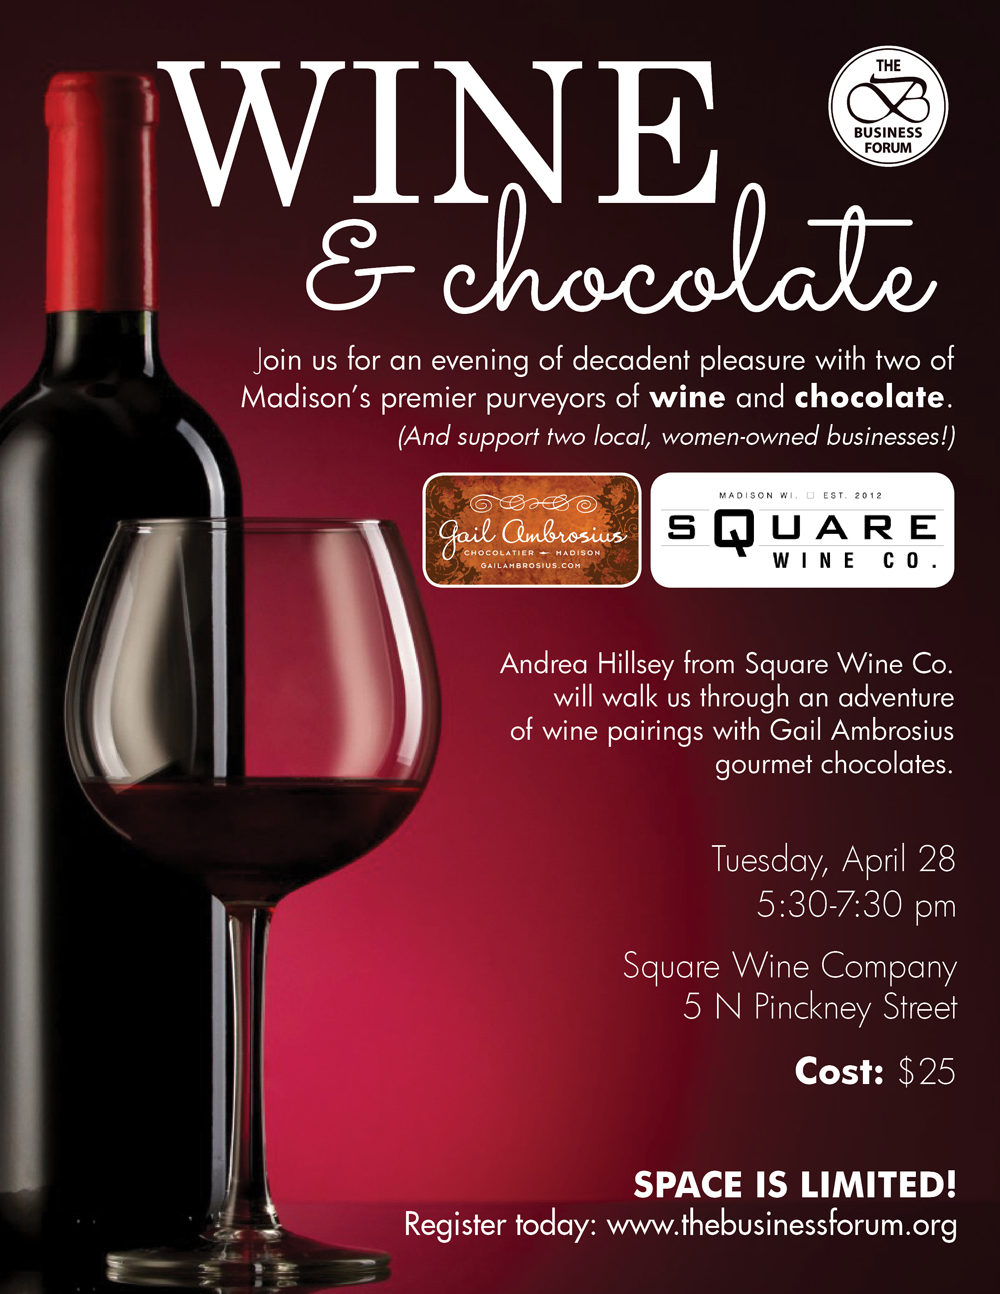 wine dinner menu template - the business forum wine and chocolate tasting